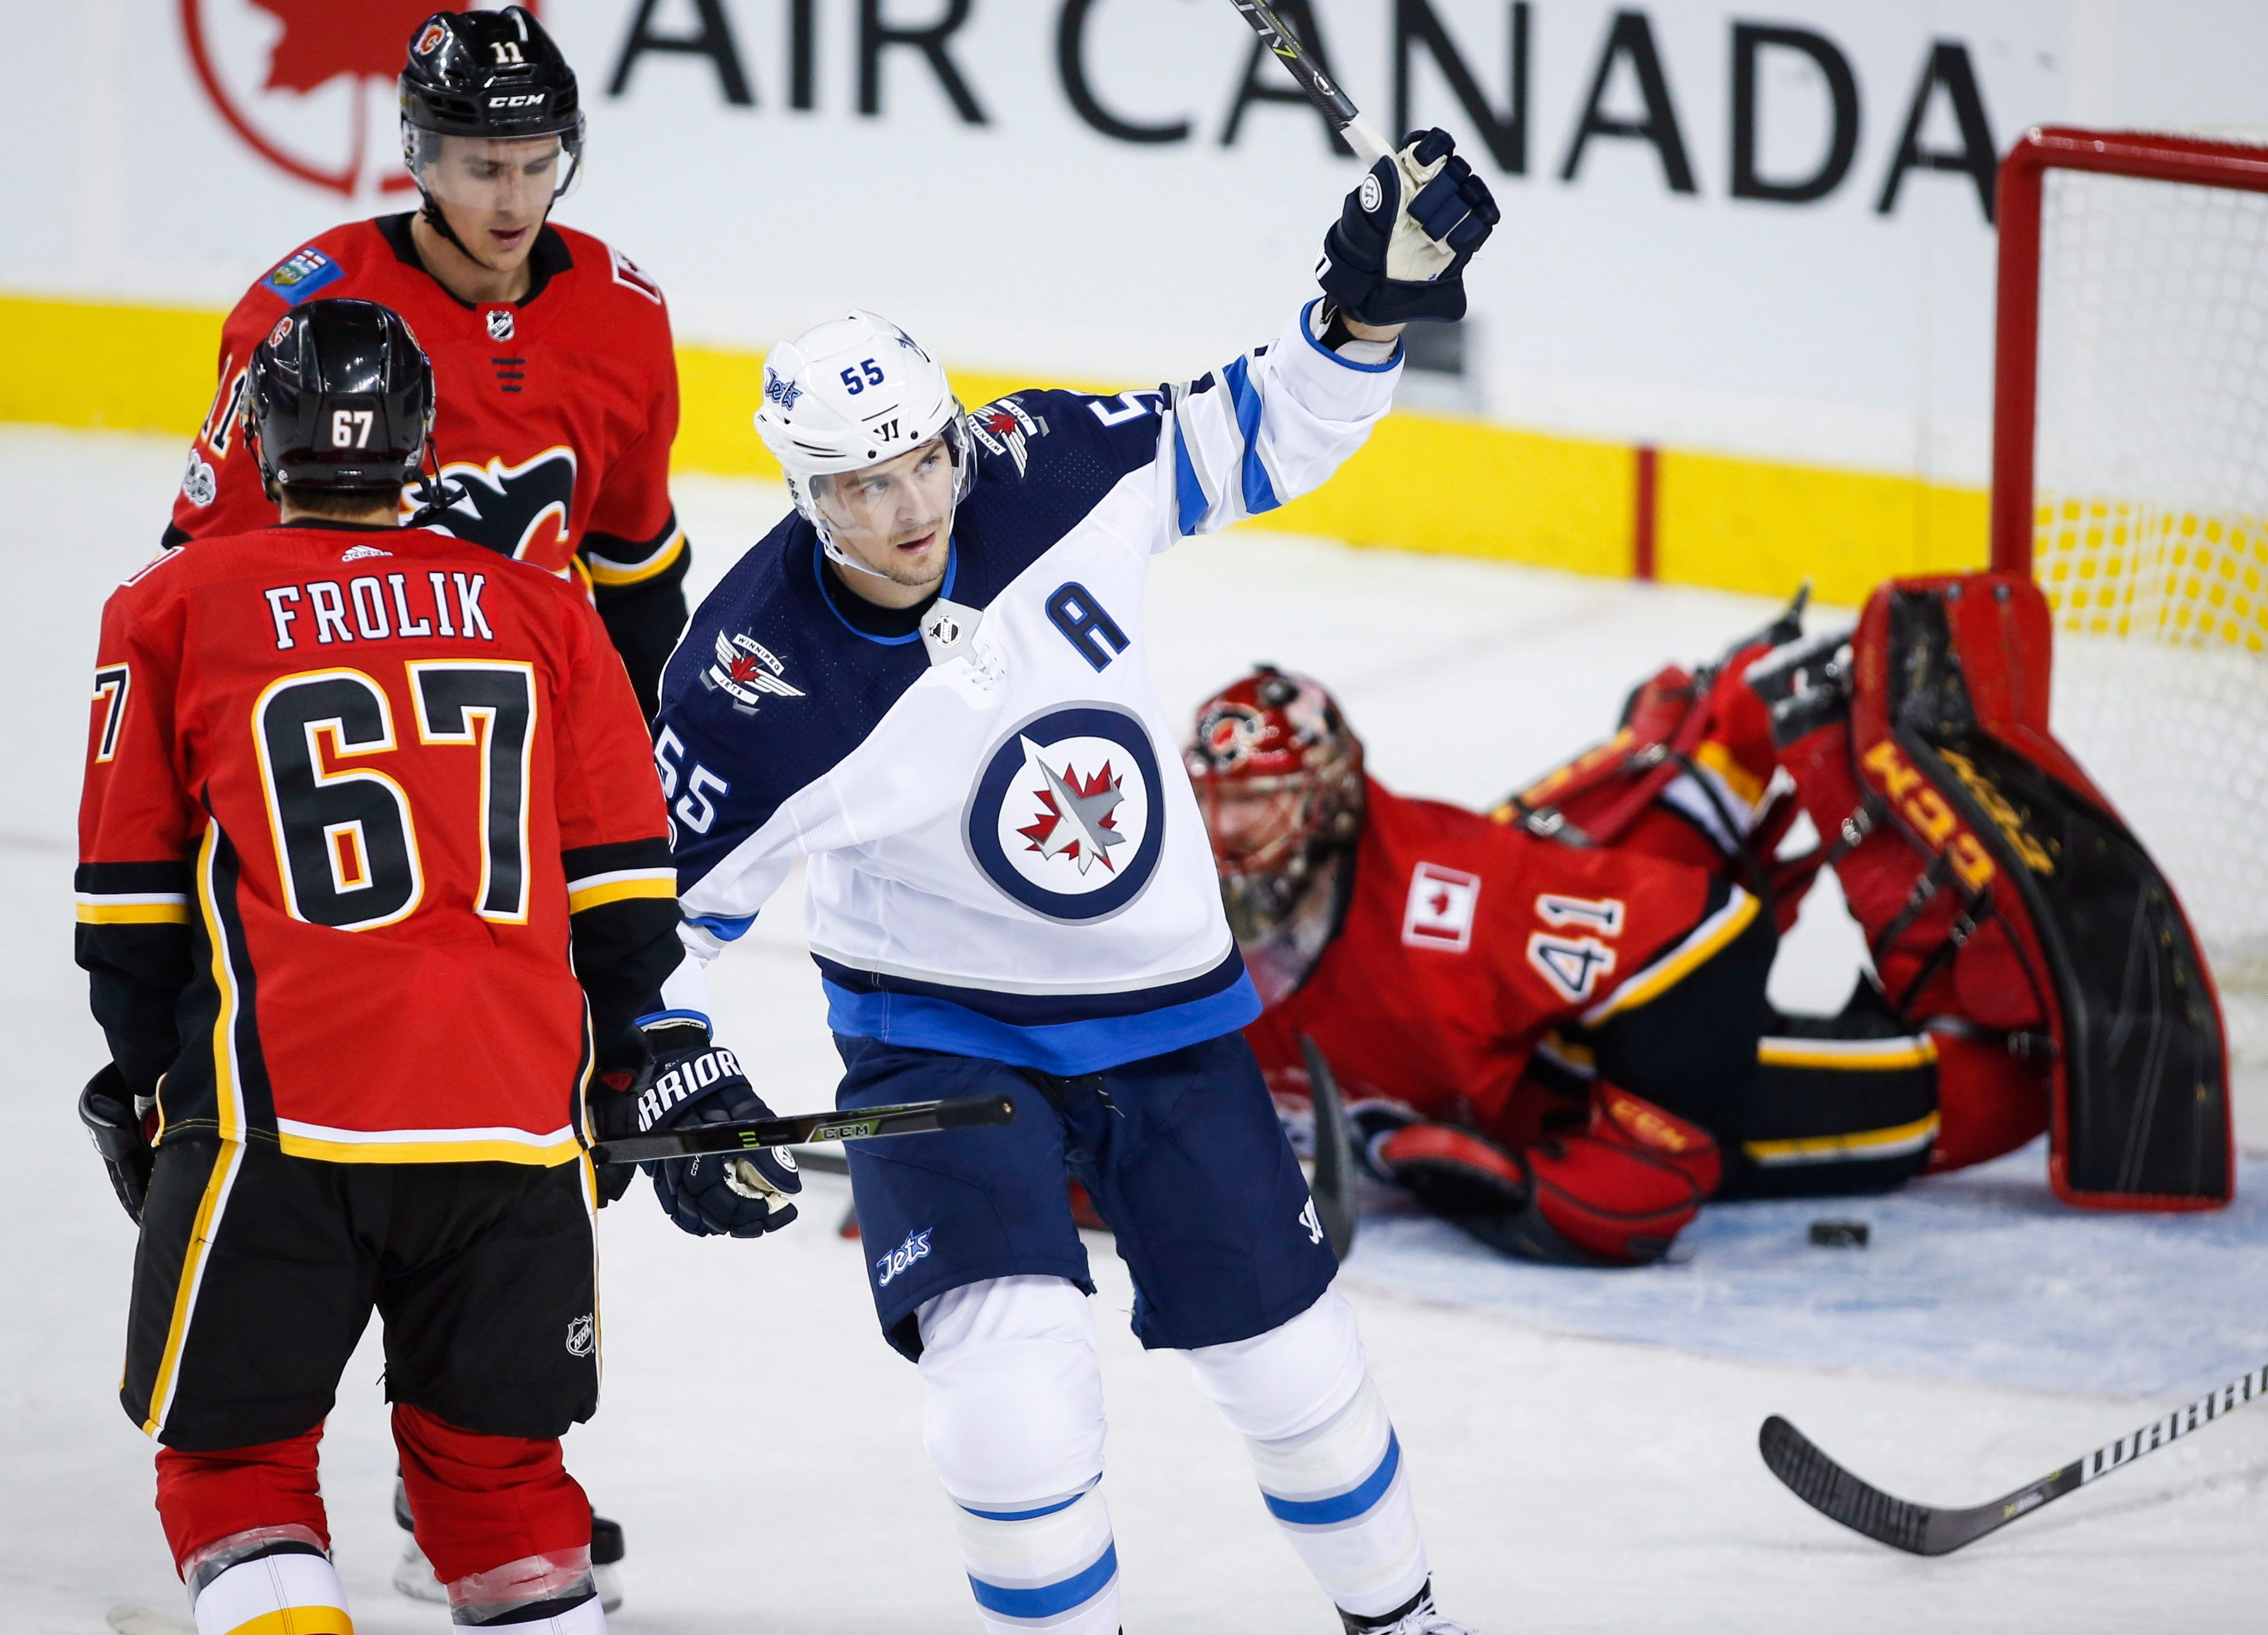 Brodie has 2 goals, 2 assists in Flames' 6-3 win over Jets